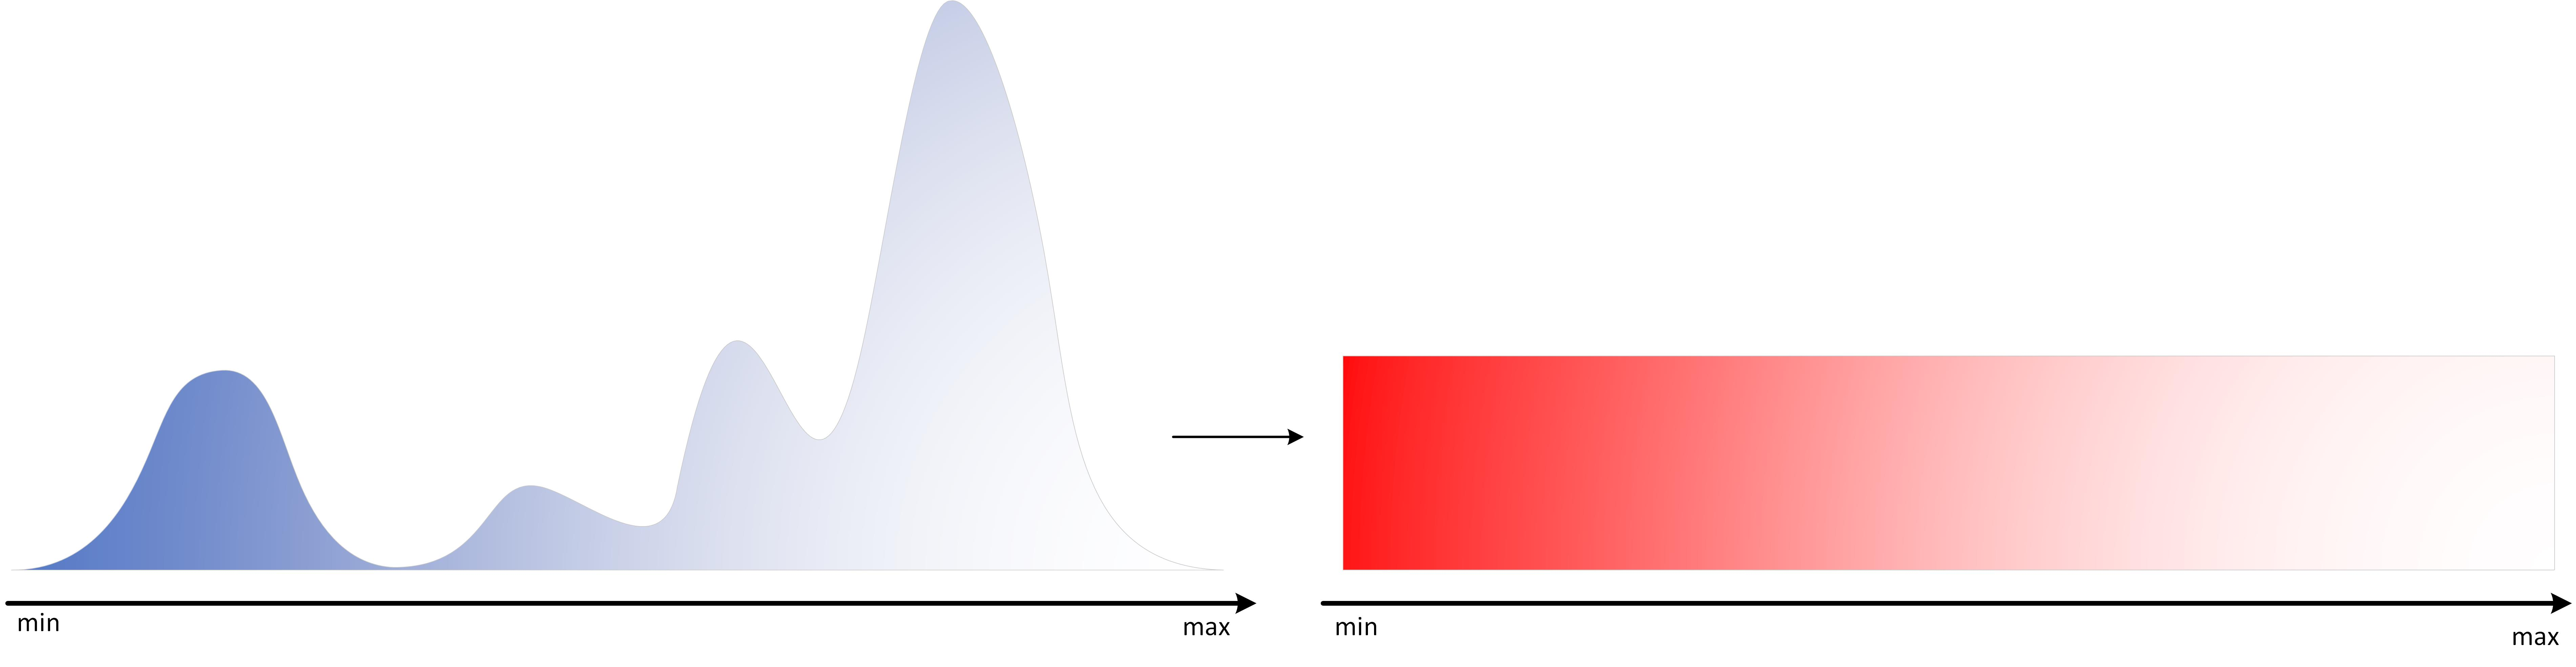 Visulisation of possible data distribution before and after the resampling operation.